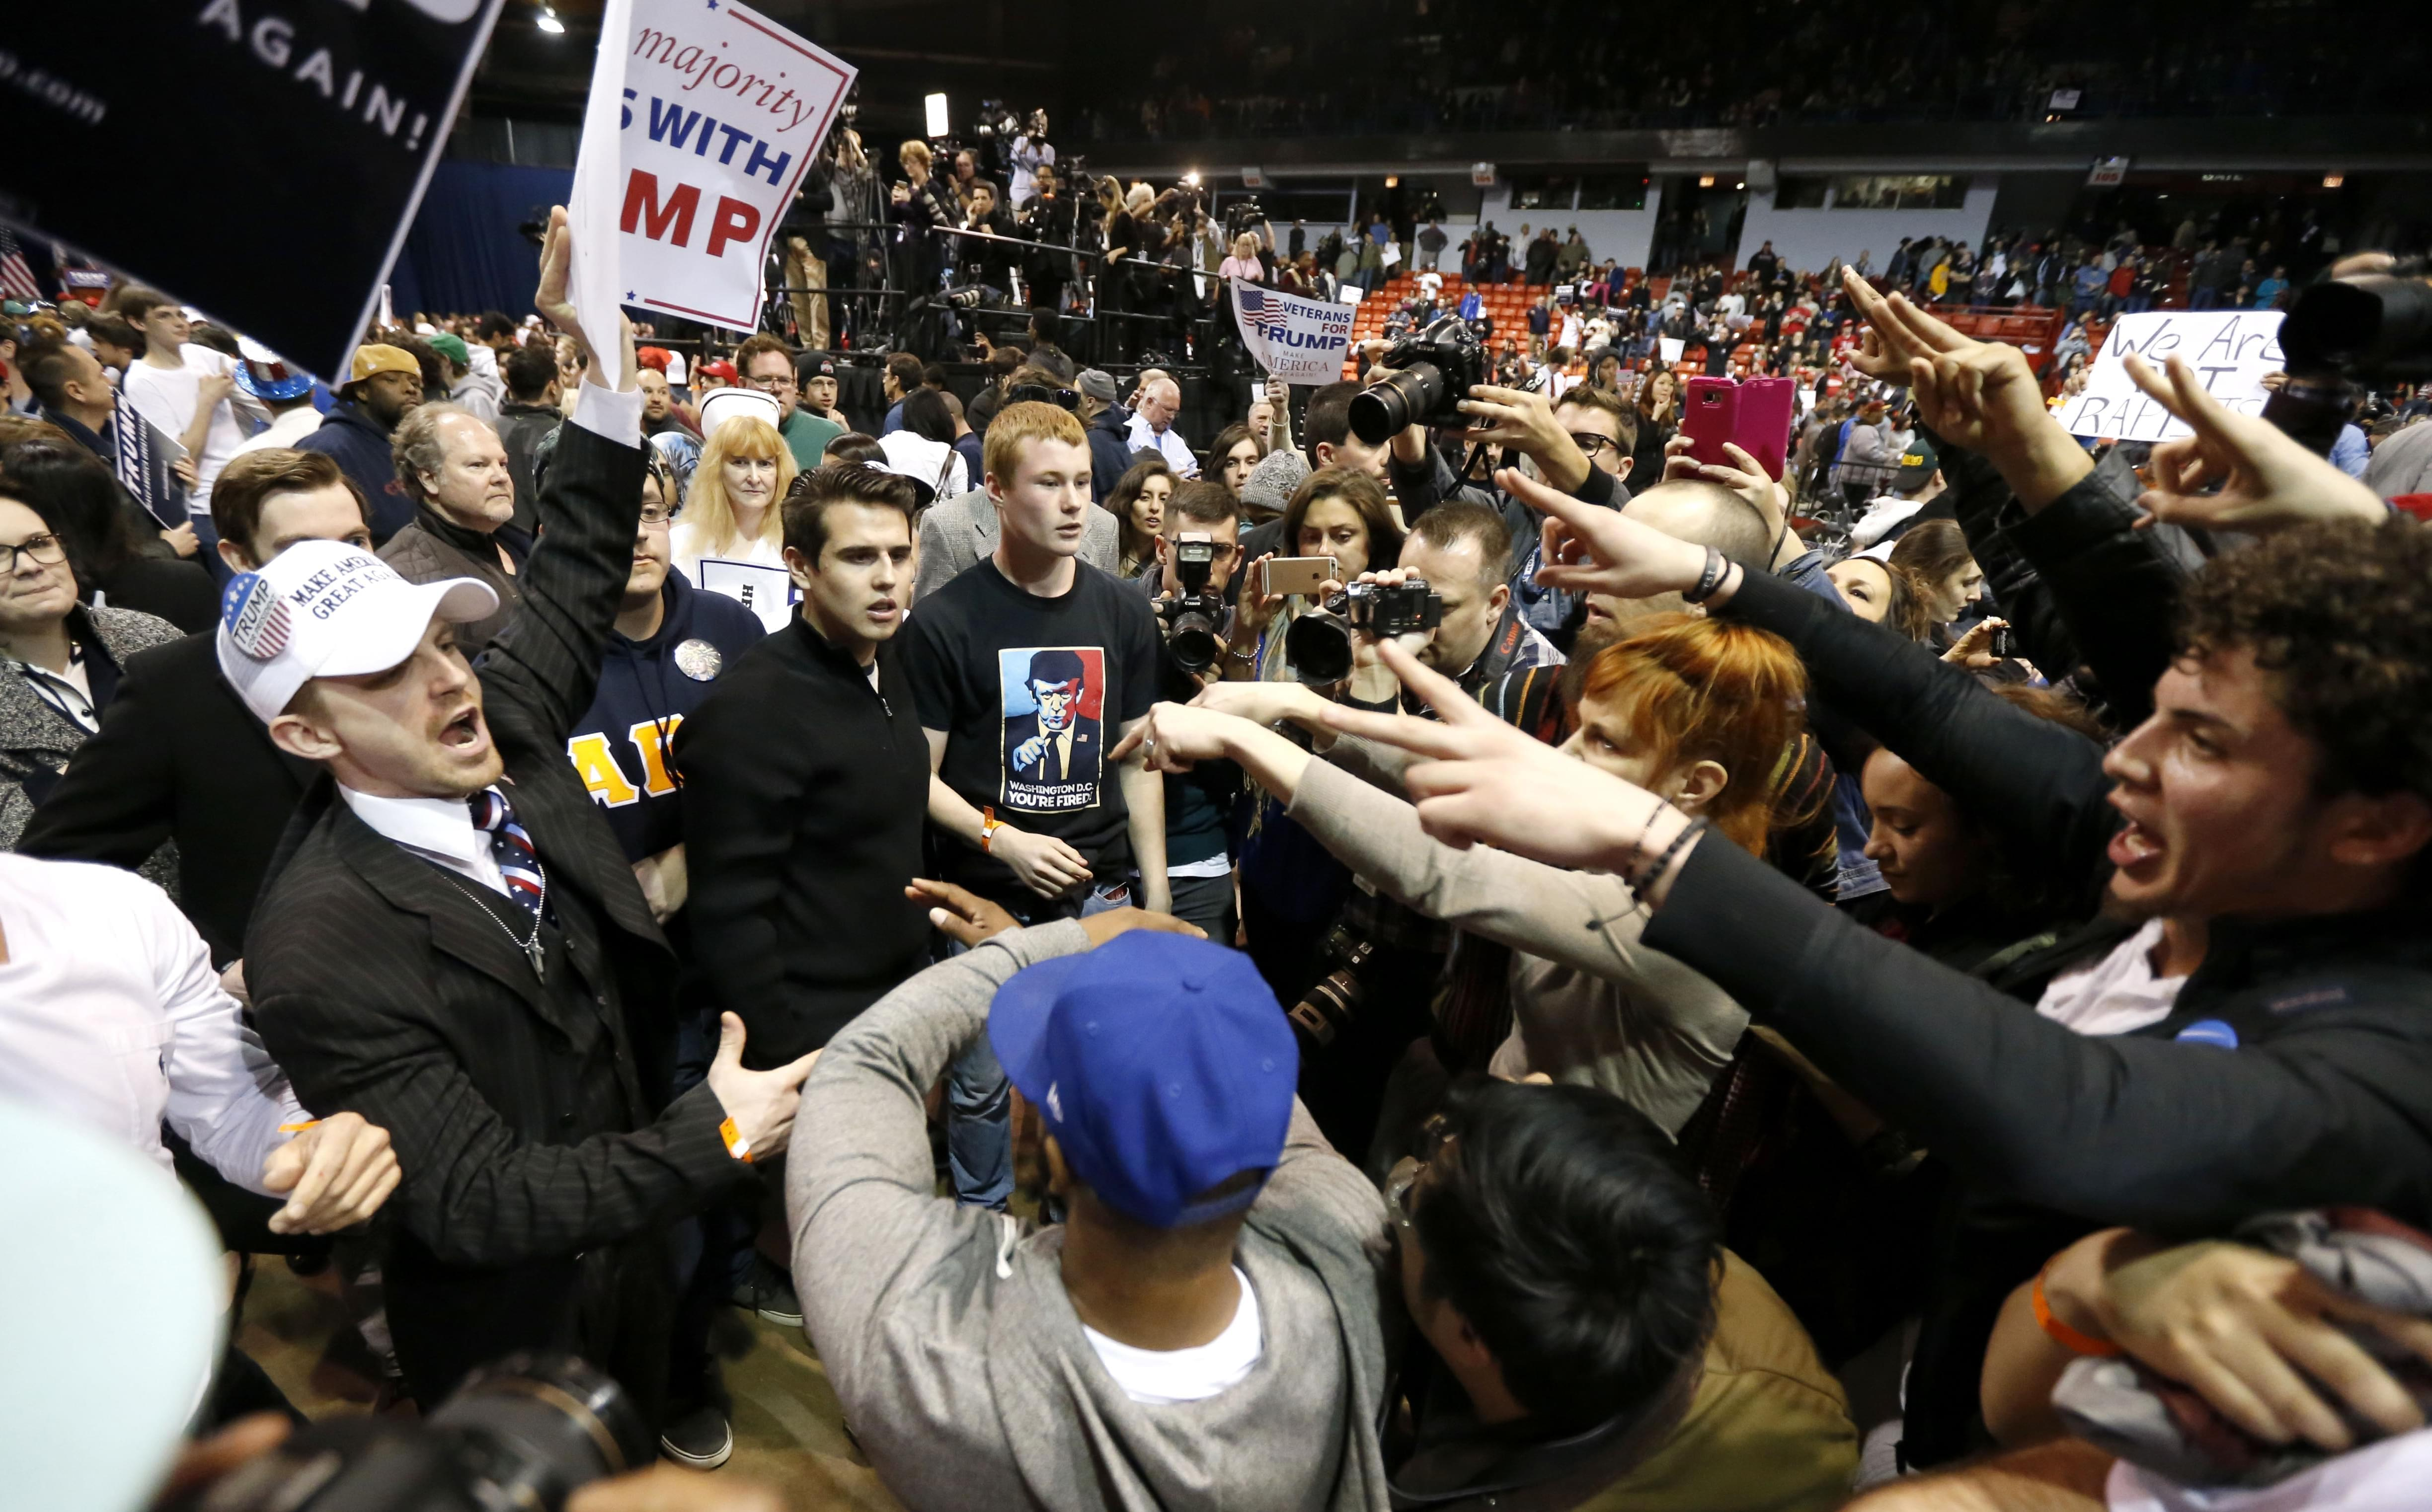 upporters of Republican presidential candidate Donald Trump, left, face off with protesters after a rally on the campus of the University of Illinois-Chicago was cancelled due to security concerns Friday,